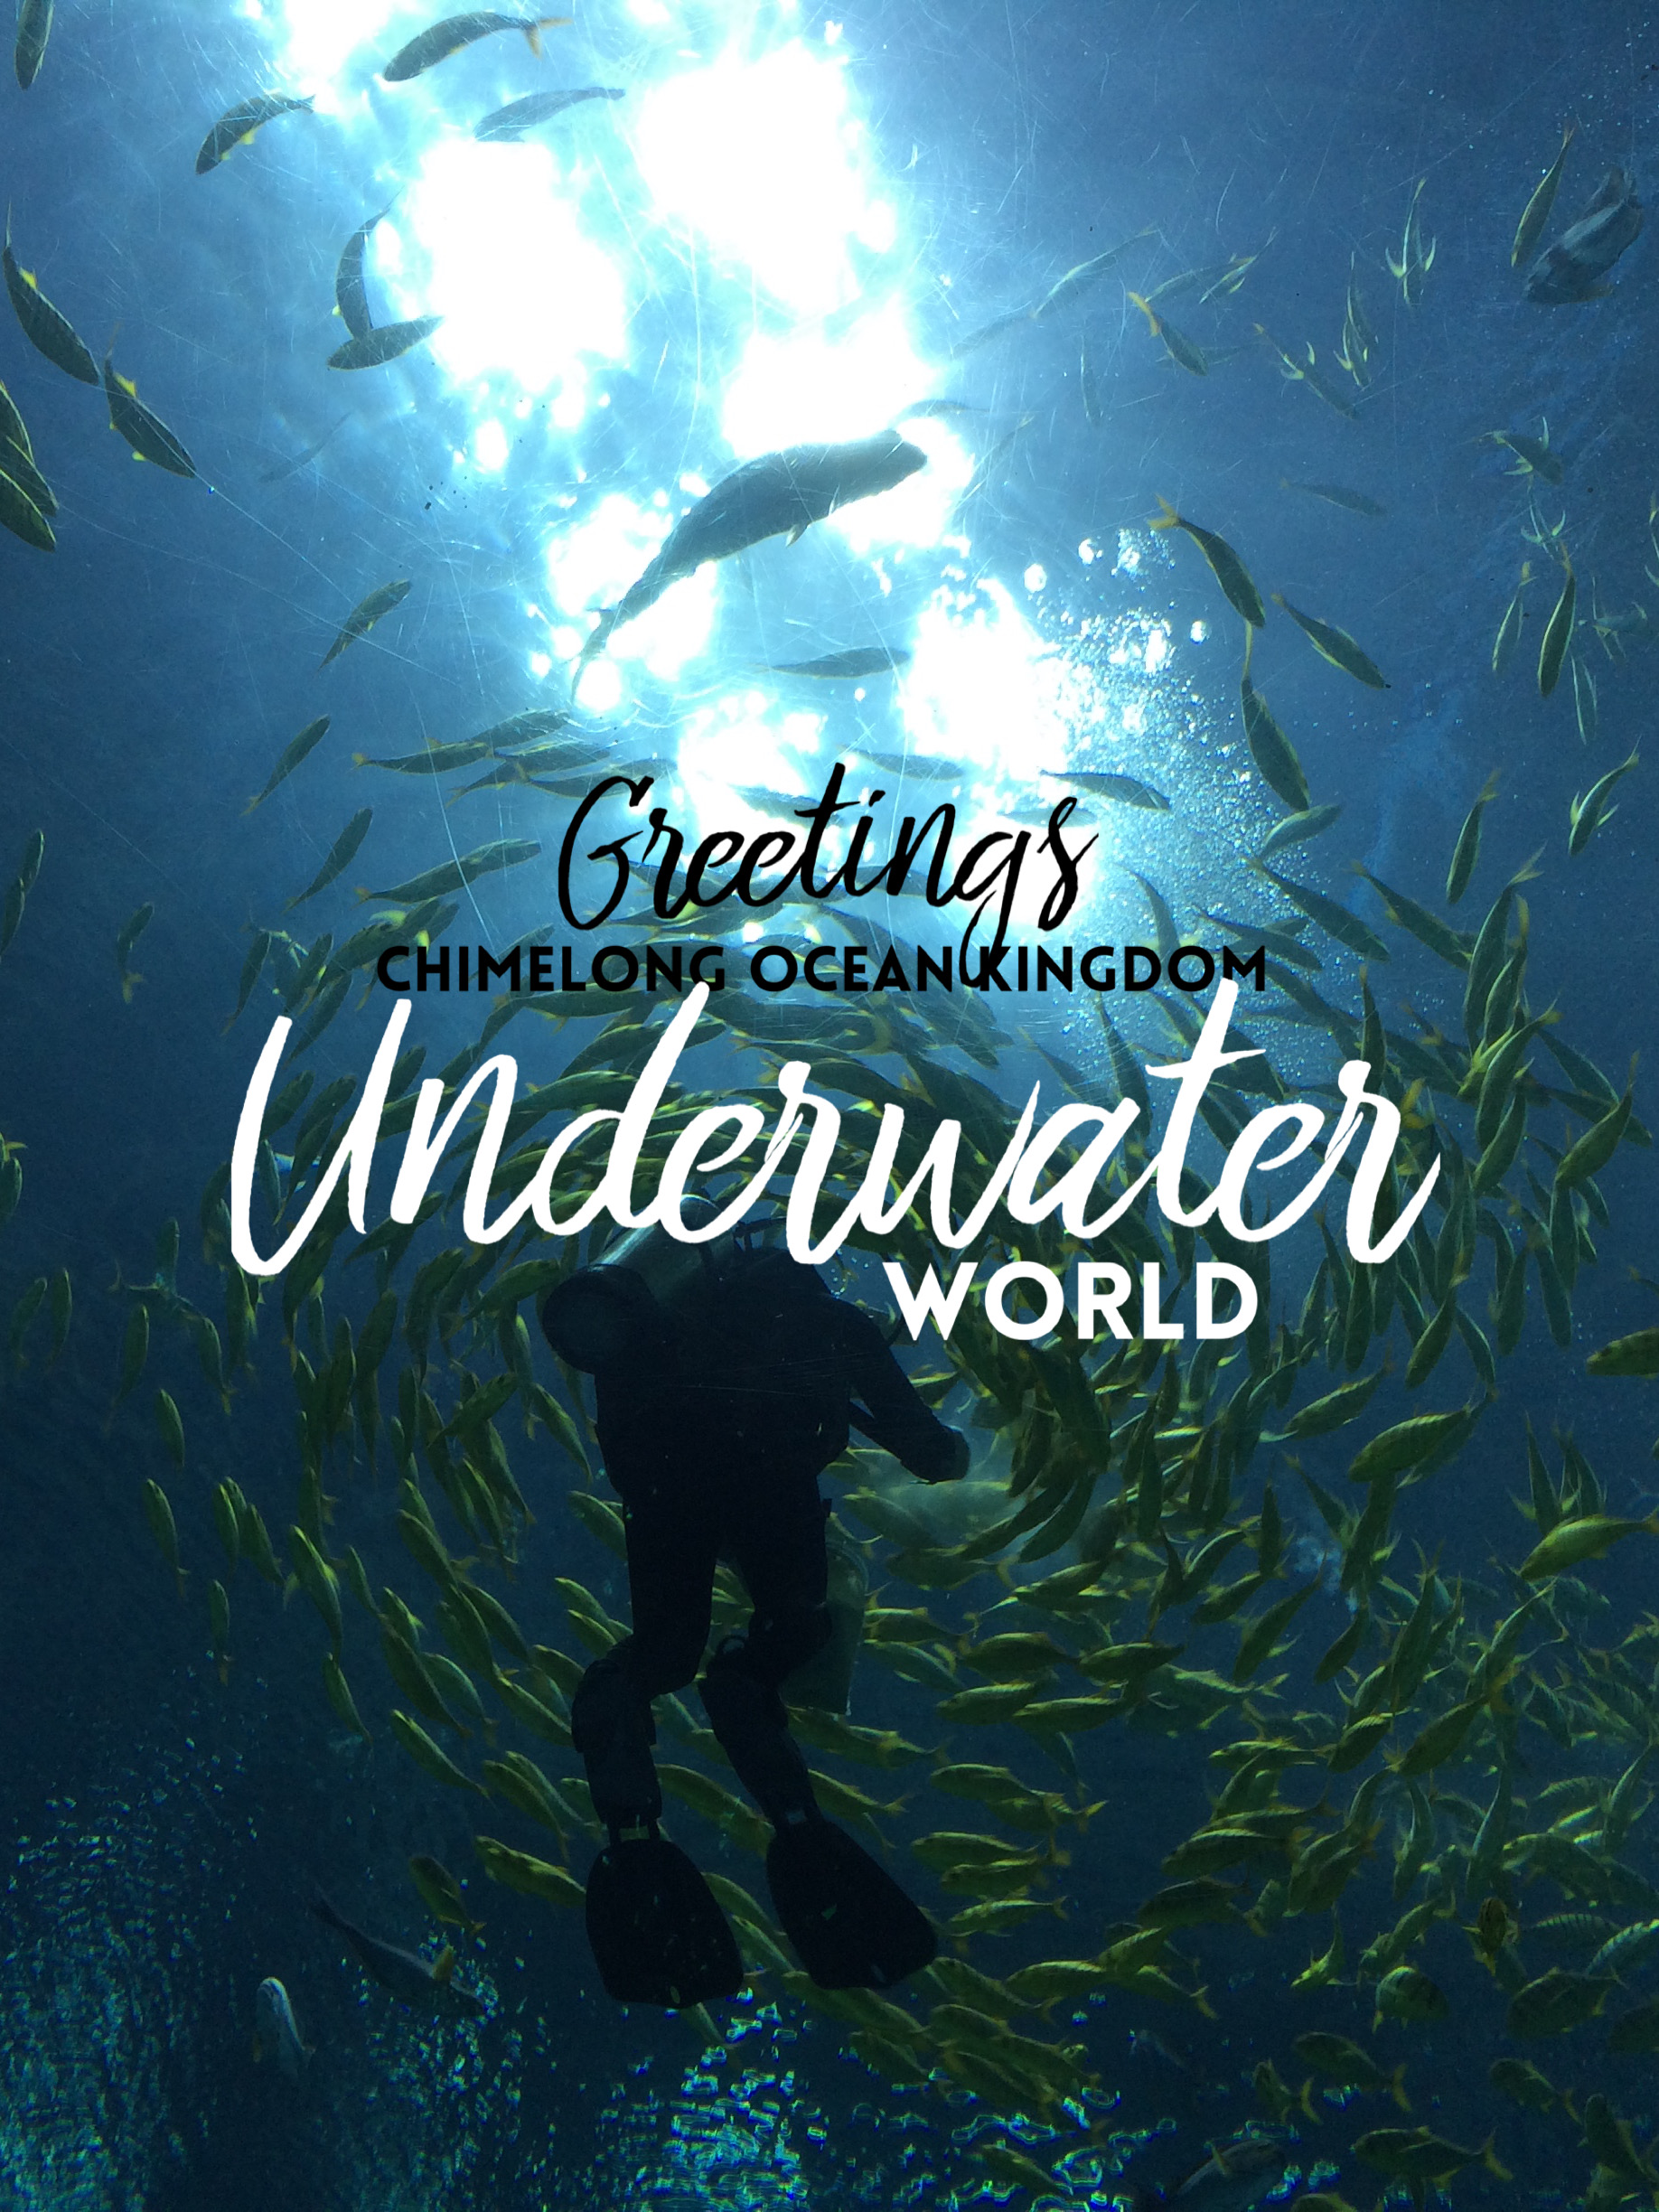 Greetings from the Underwater World